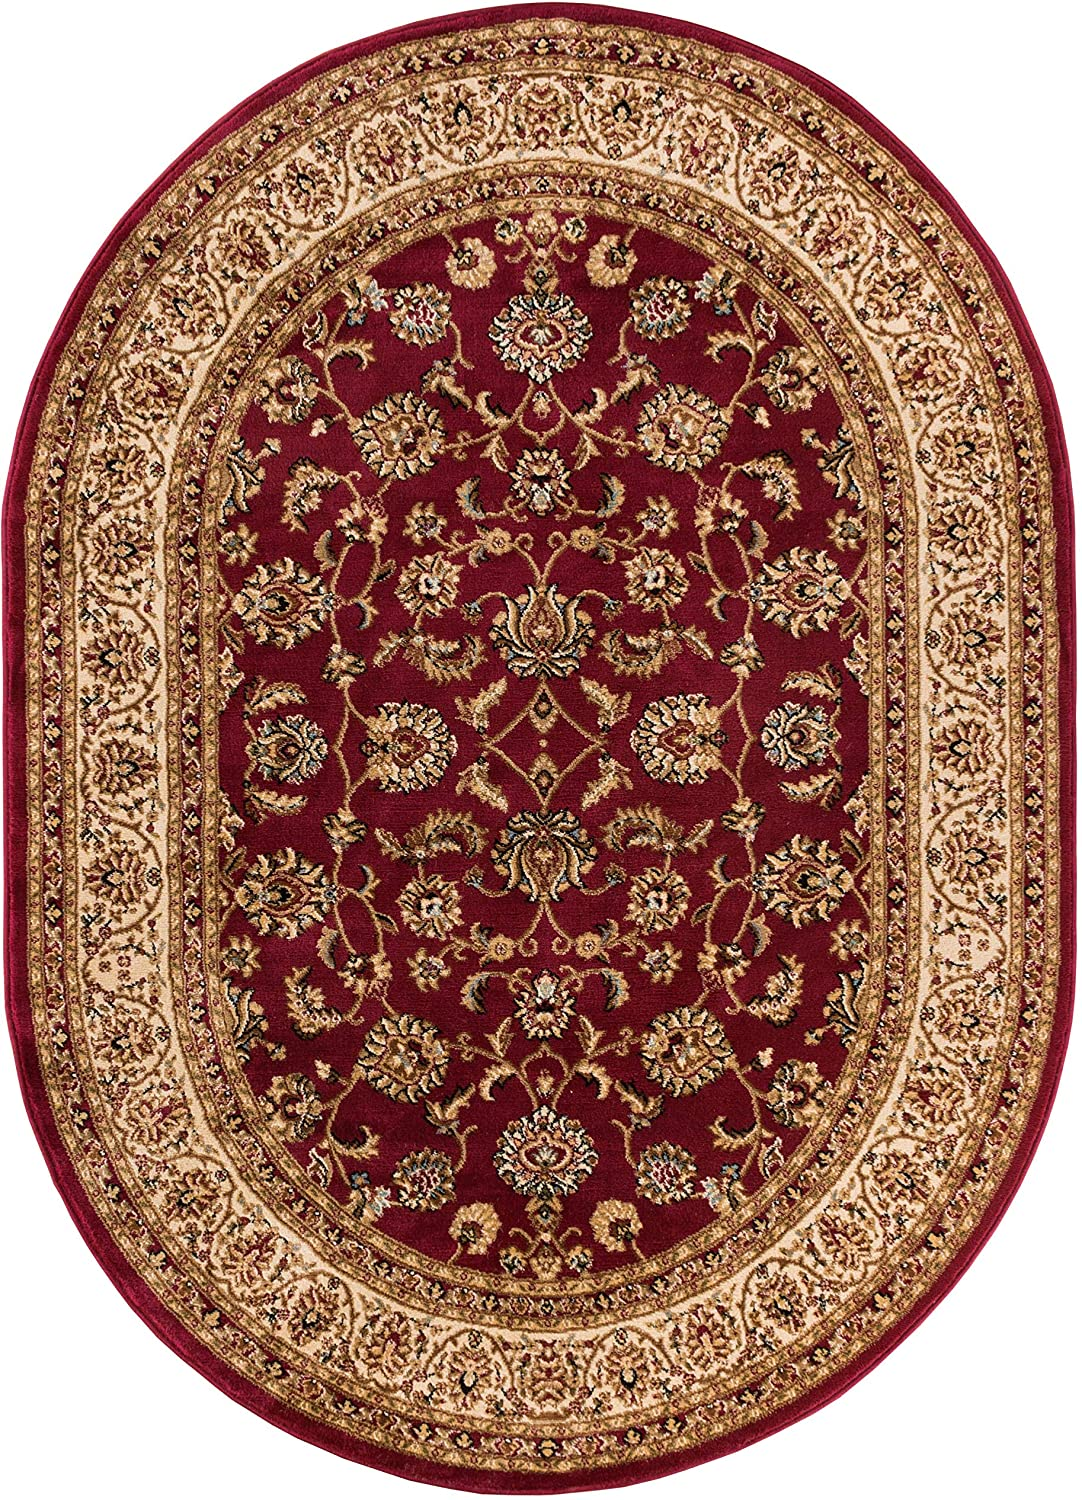 Noble Sarouk Red Persian Floral Oriental Formal Traditional Area Rug 5x7 ( 5'3